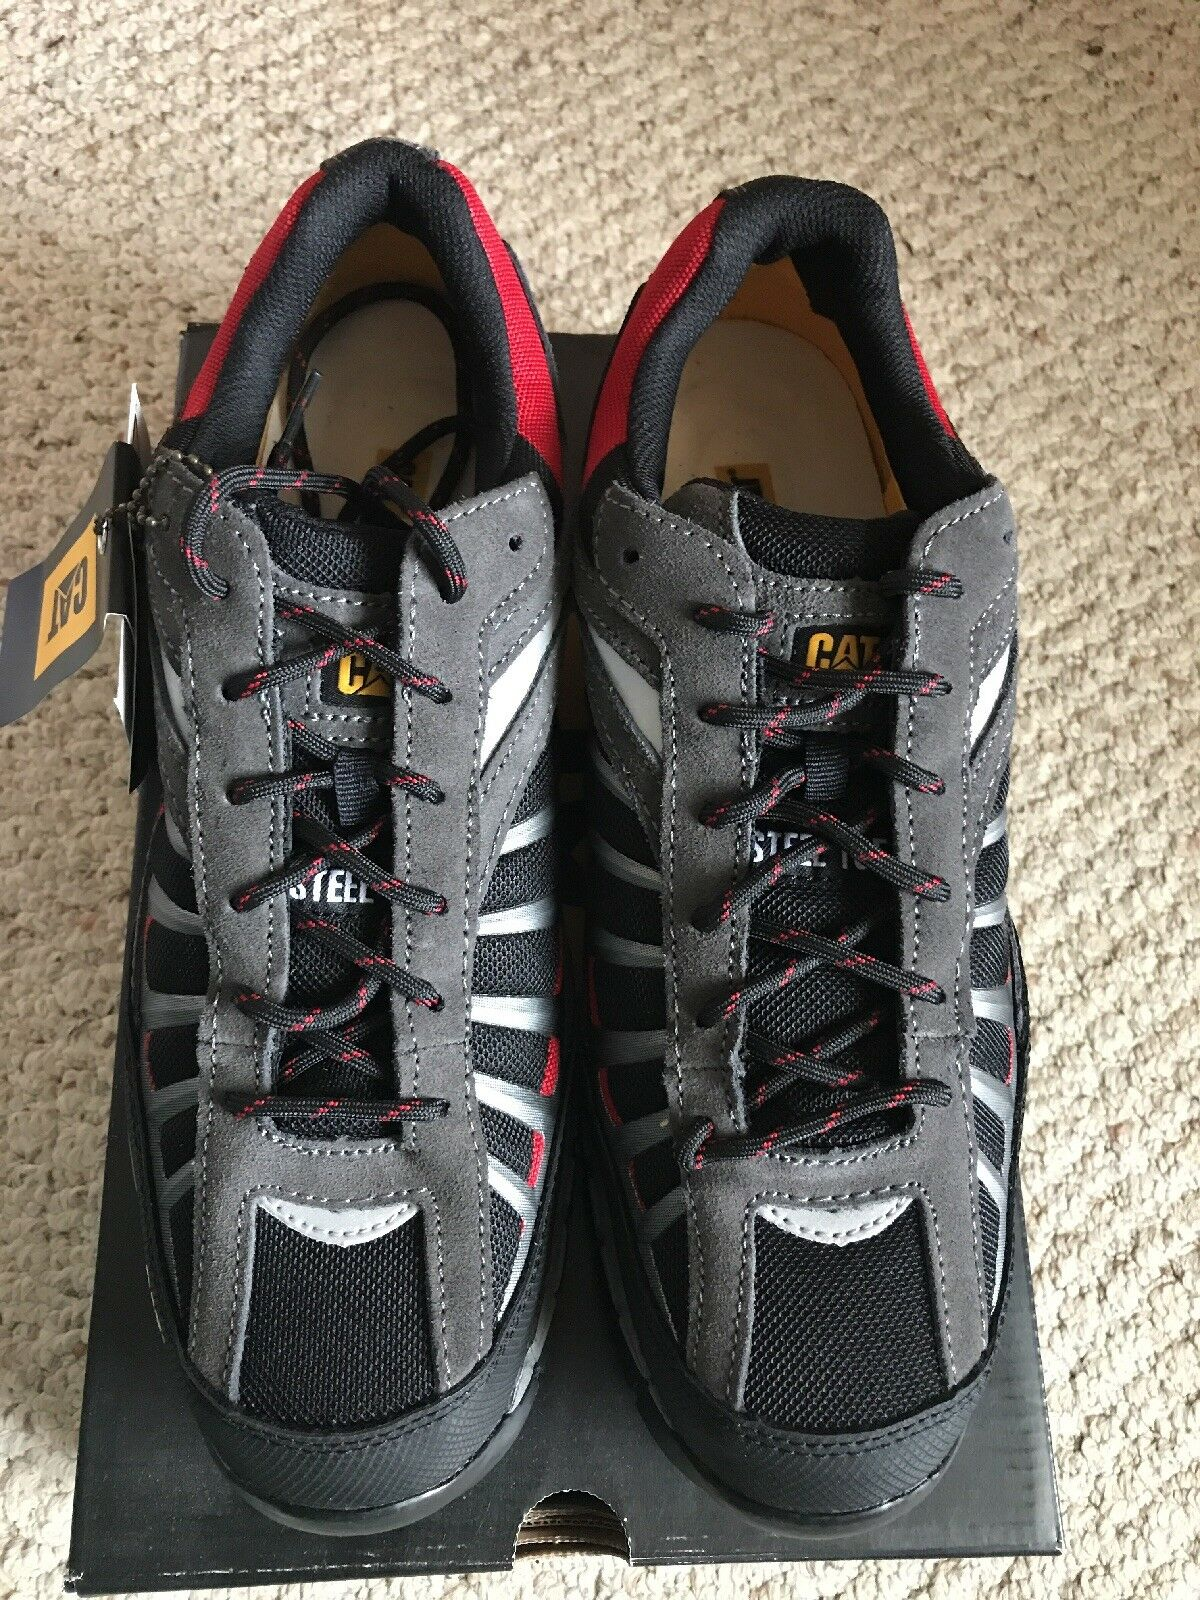 CATERPILLAR INFRASTRUCTURE Mens Steel Toe Safety Shoe Red/Blk/Gry NIB!